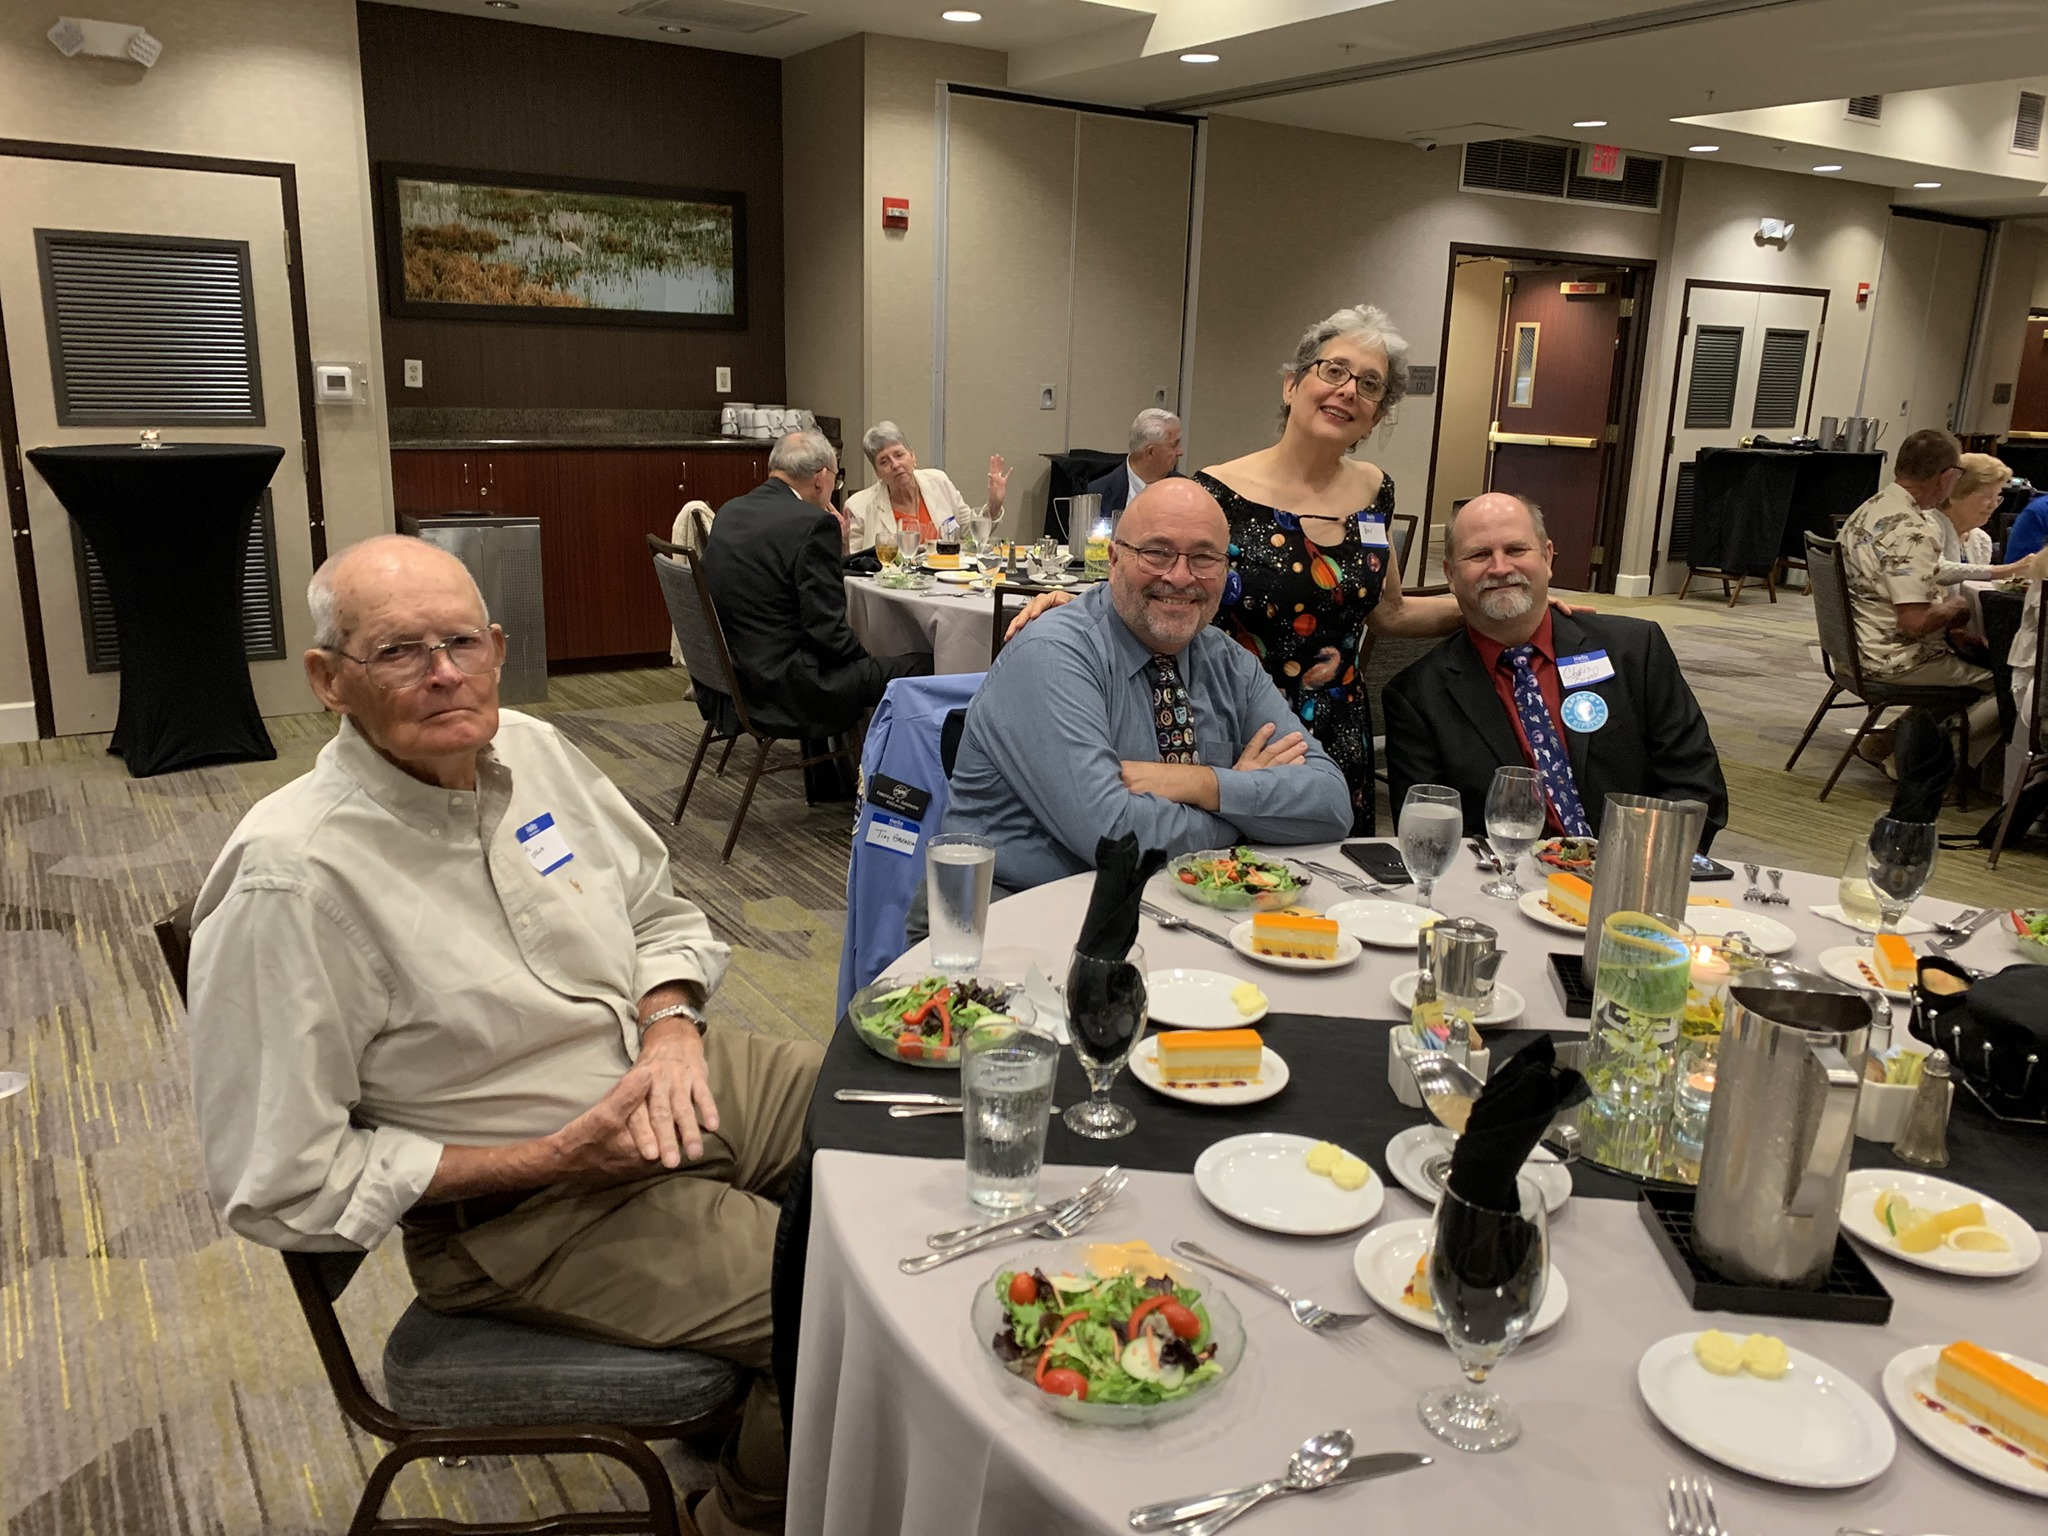 L-R: Former NASA pilot and USAF astronaut Al Crews, mission-patch artist Tim Gagnon, and spaceflight communicators Beverly Rother and Chris Boyd ready for an exciting panel! (Photo: Space Pioneers)